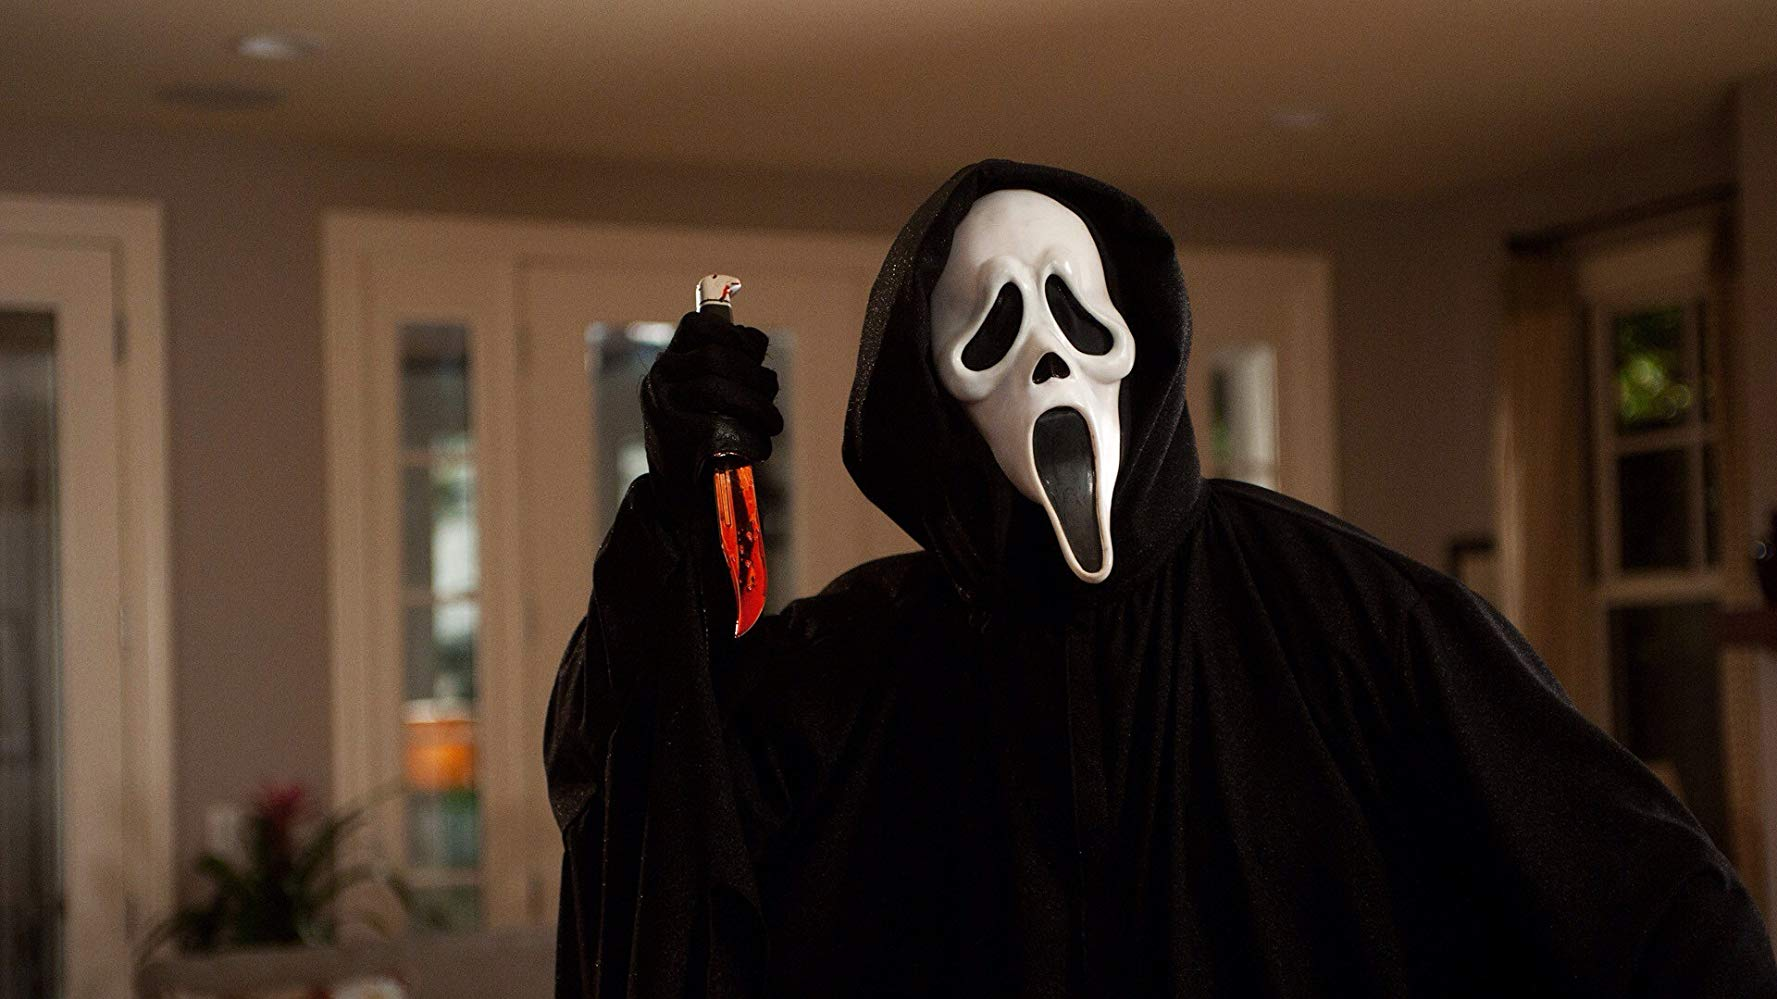 Scream 5 Plot